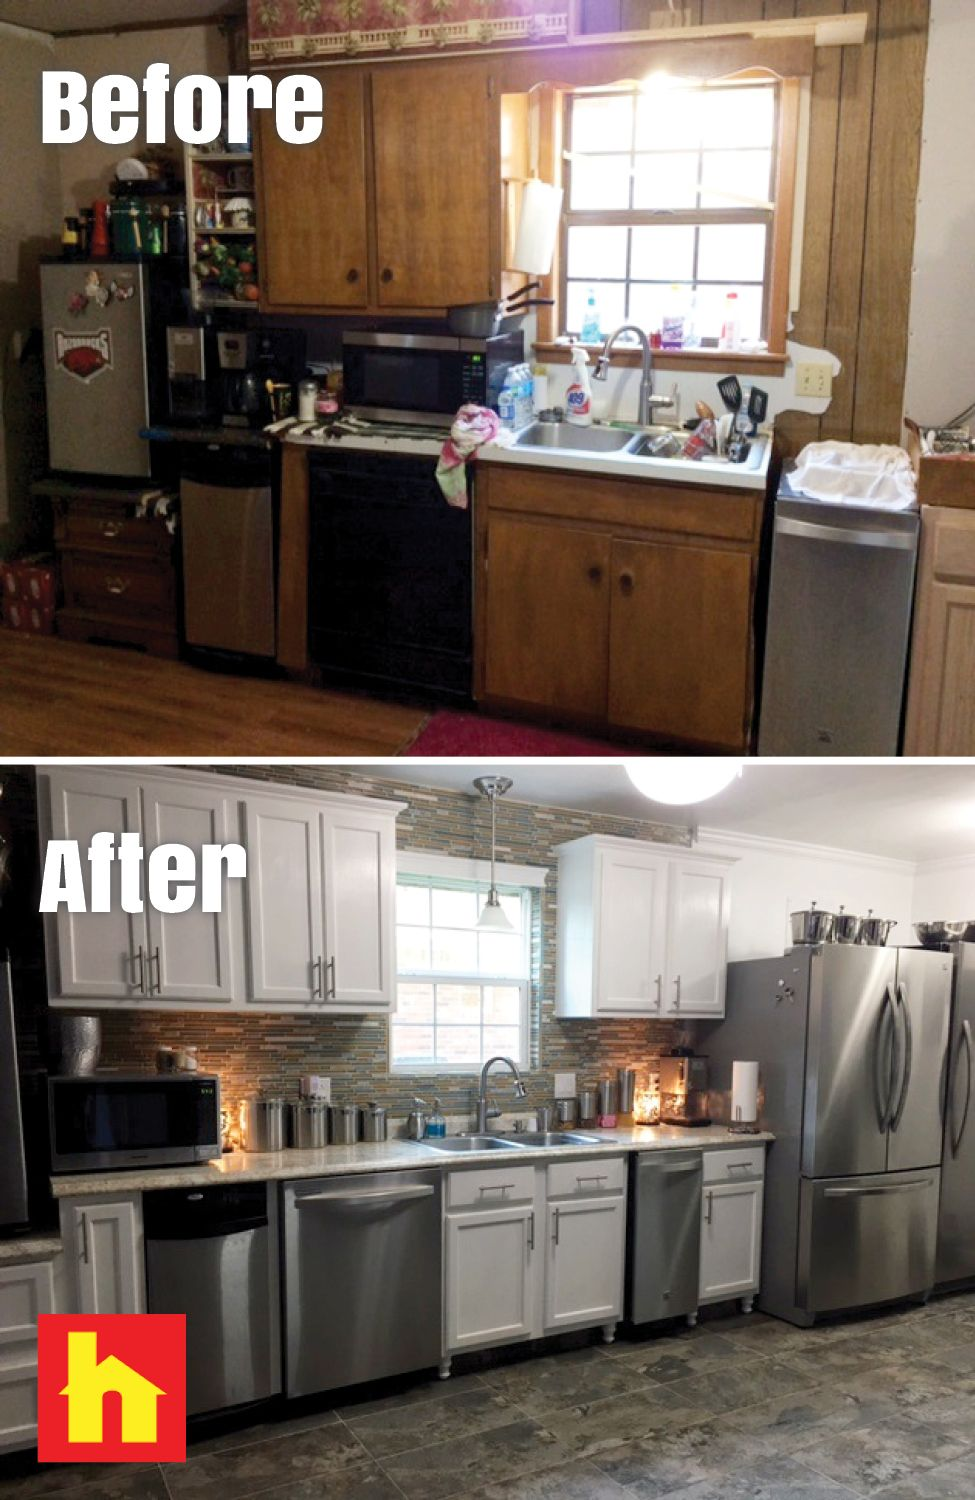 Kitchen Remodel By Freda M Of Pine Bluff Ar Remodeled My Kitchen Used Cabinets Flooring Cabinet Door Pulls Glass W Kitchen Remodel Used Cabinets Kitchen